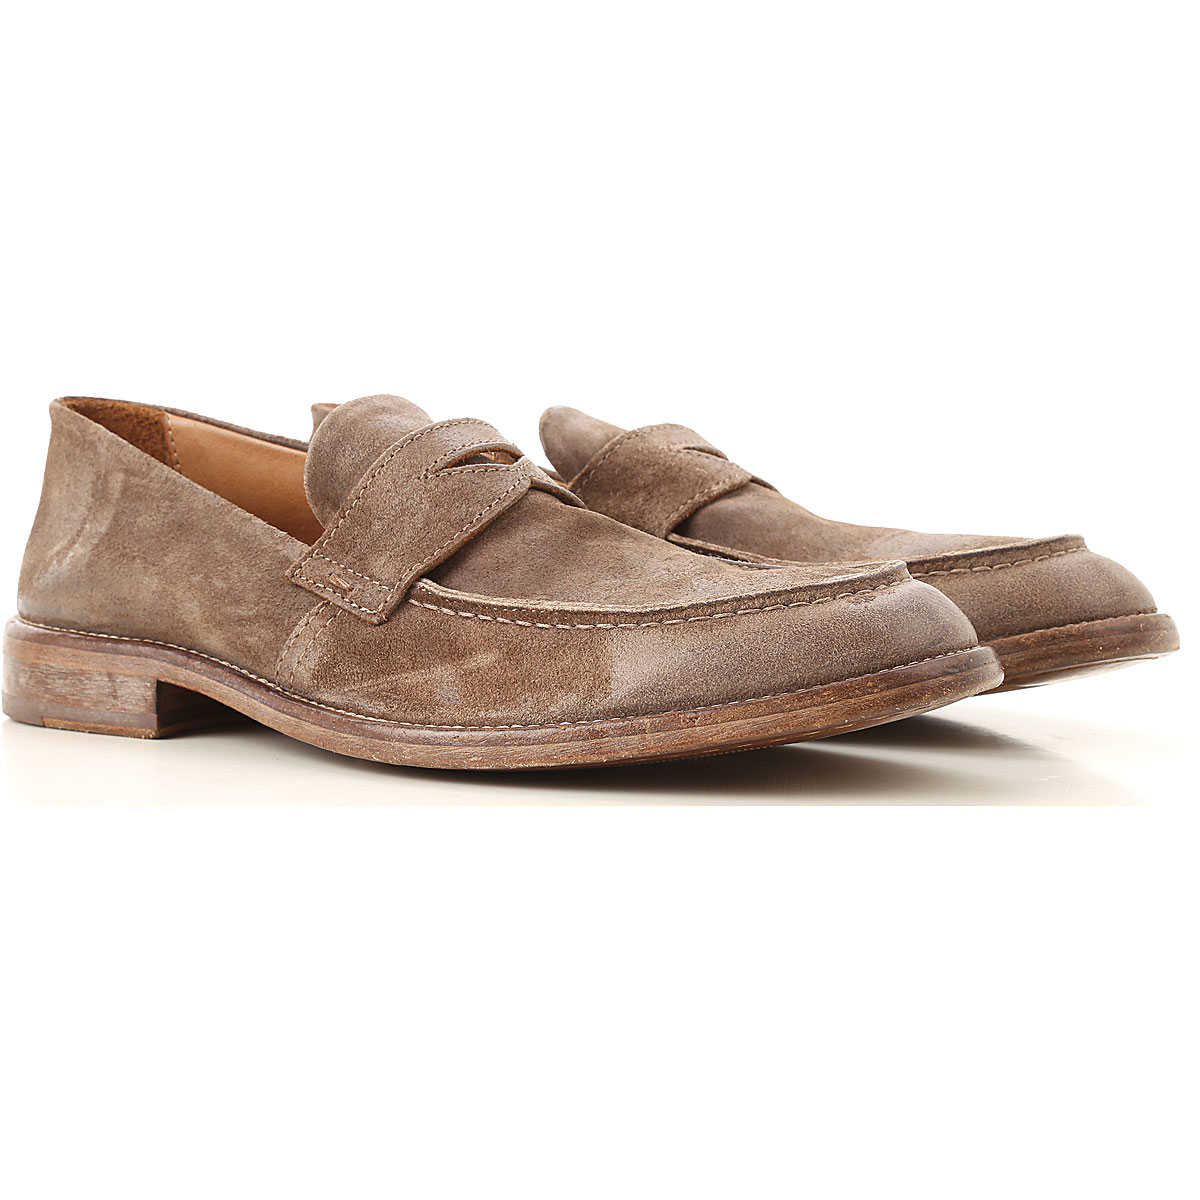 Moma Loafers for Men